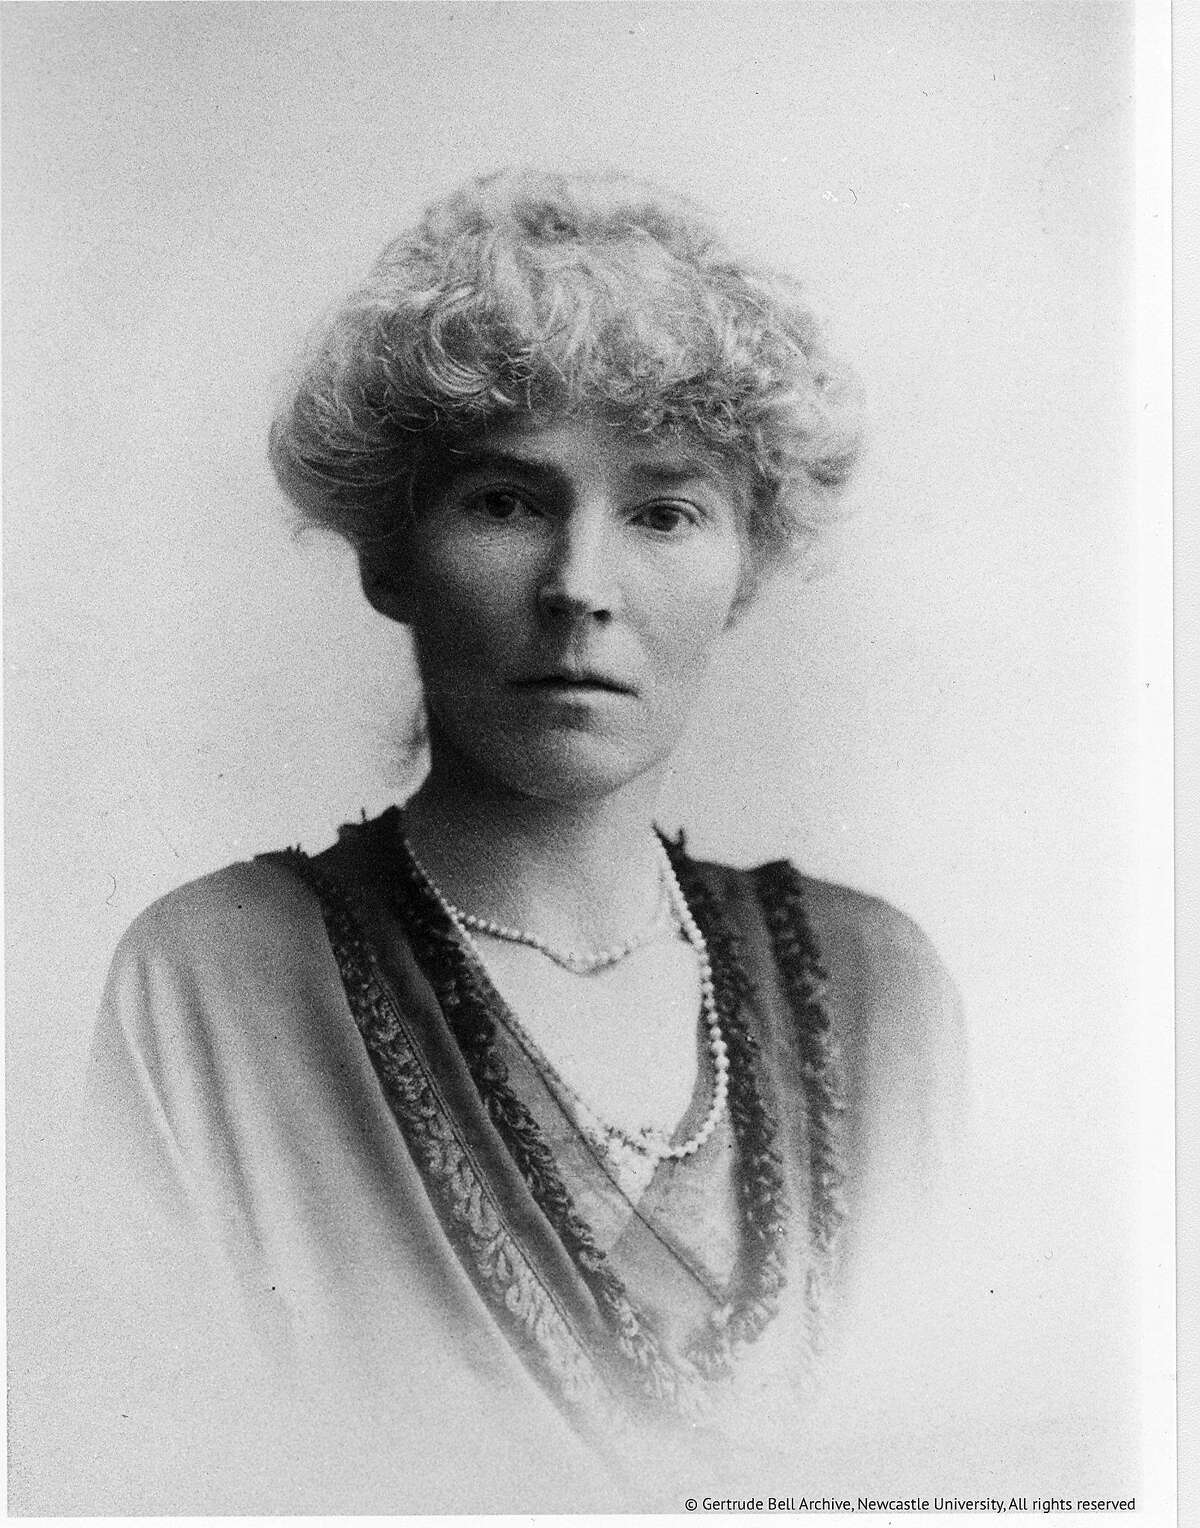 A portrait of Gertrude Bell in the documentary